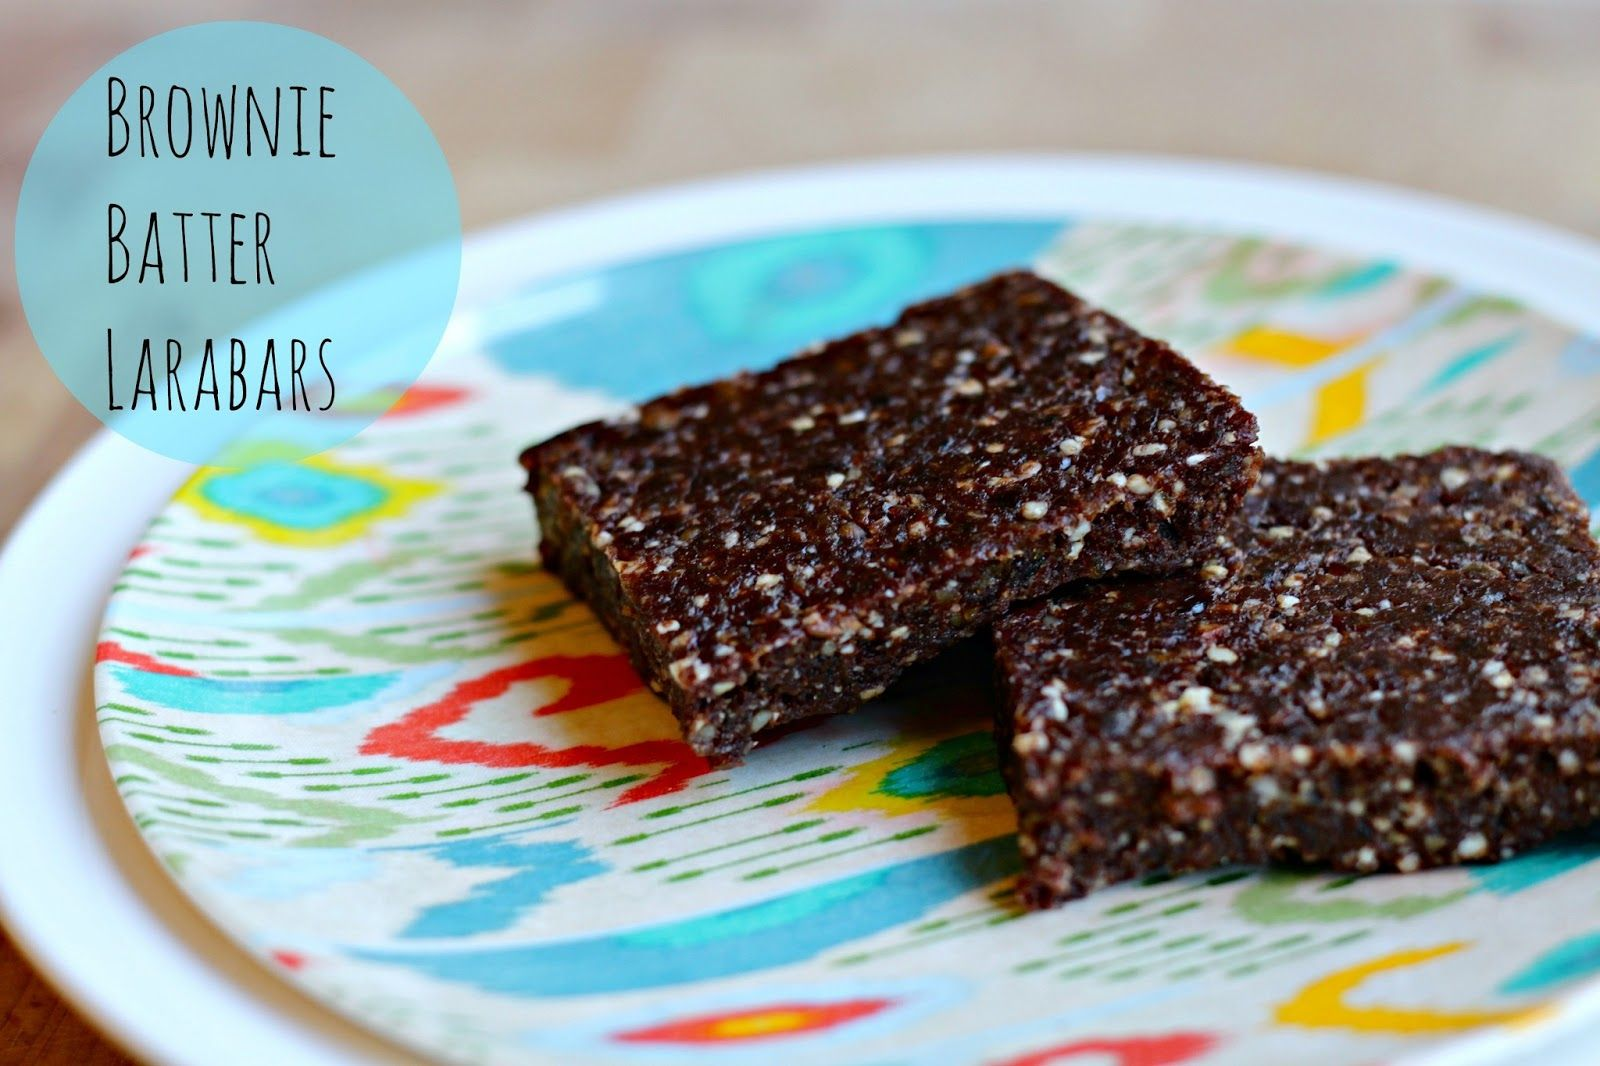 See Sarah Bake: Brownie Batter Larabars